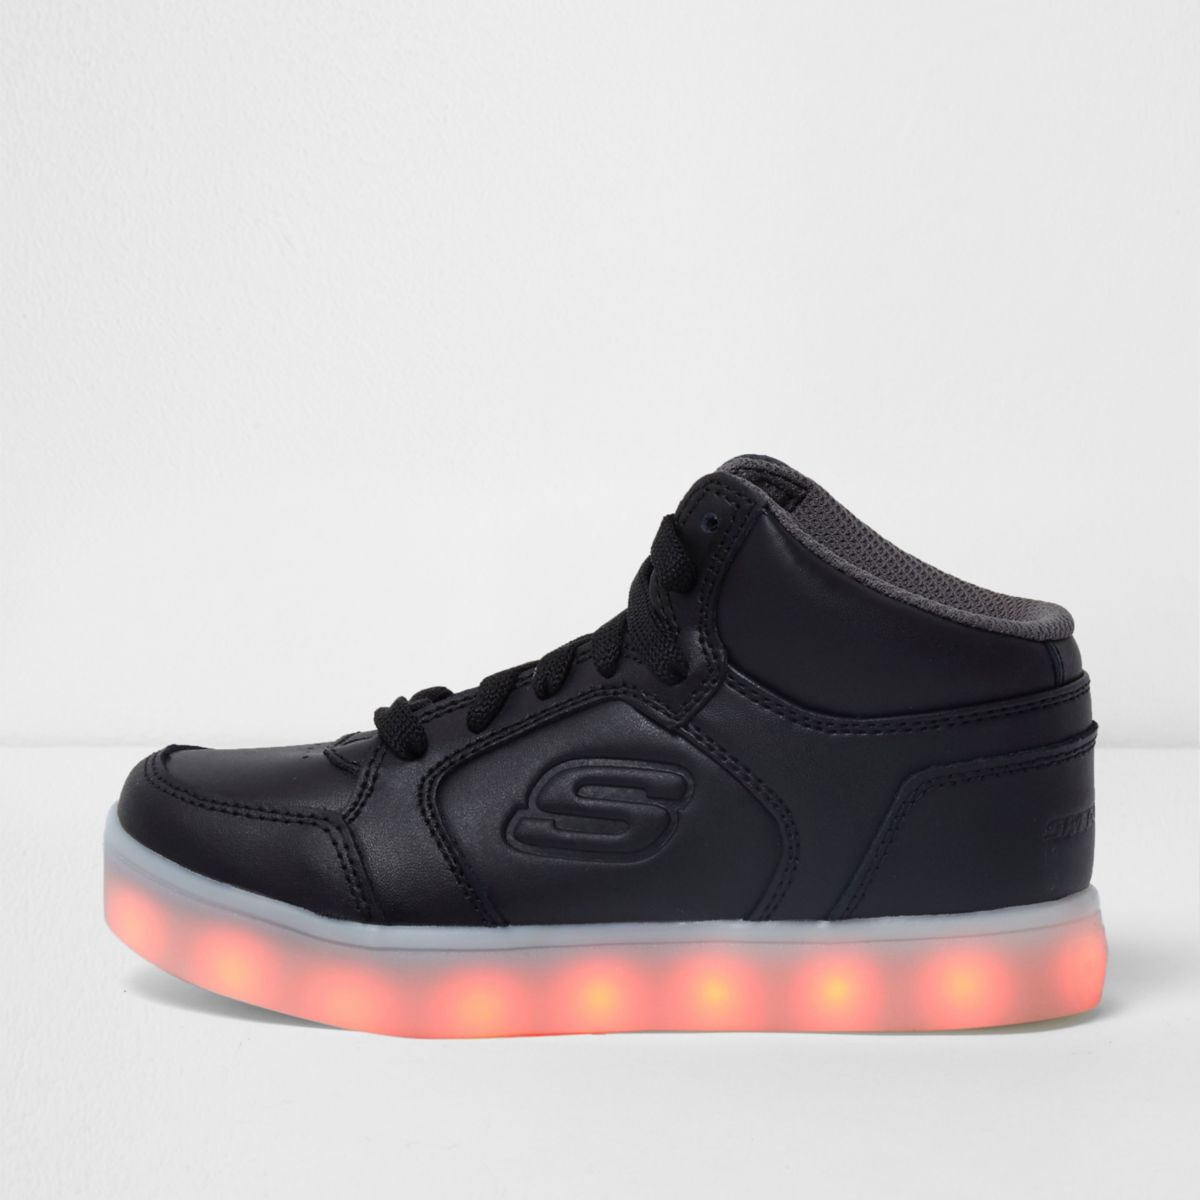 Kids black Skechers light high top trainers